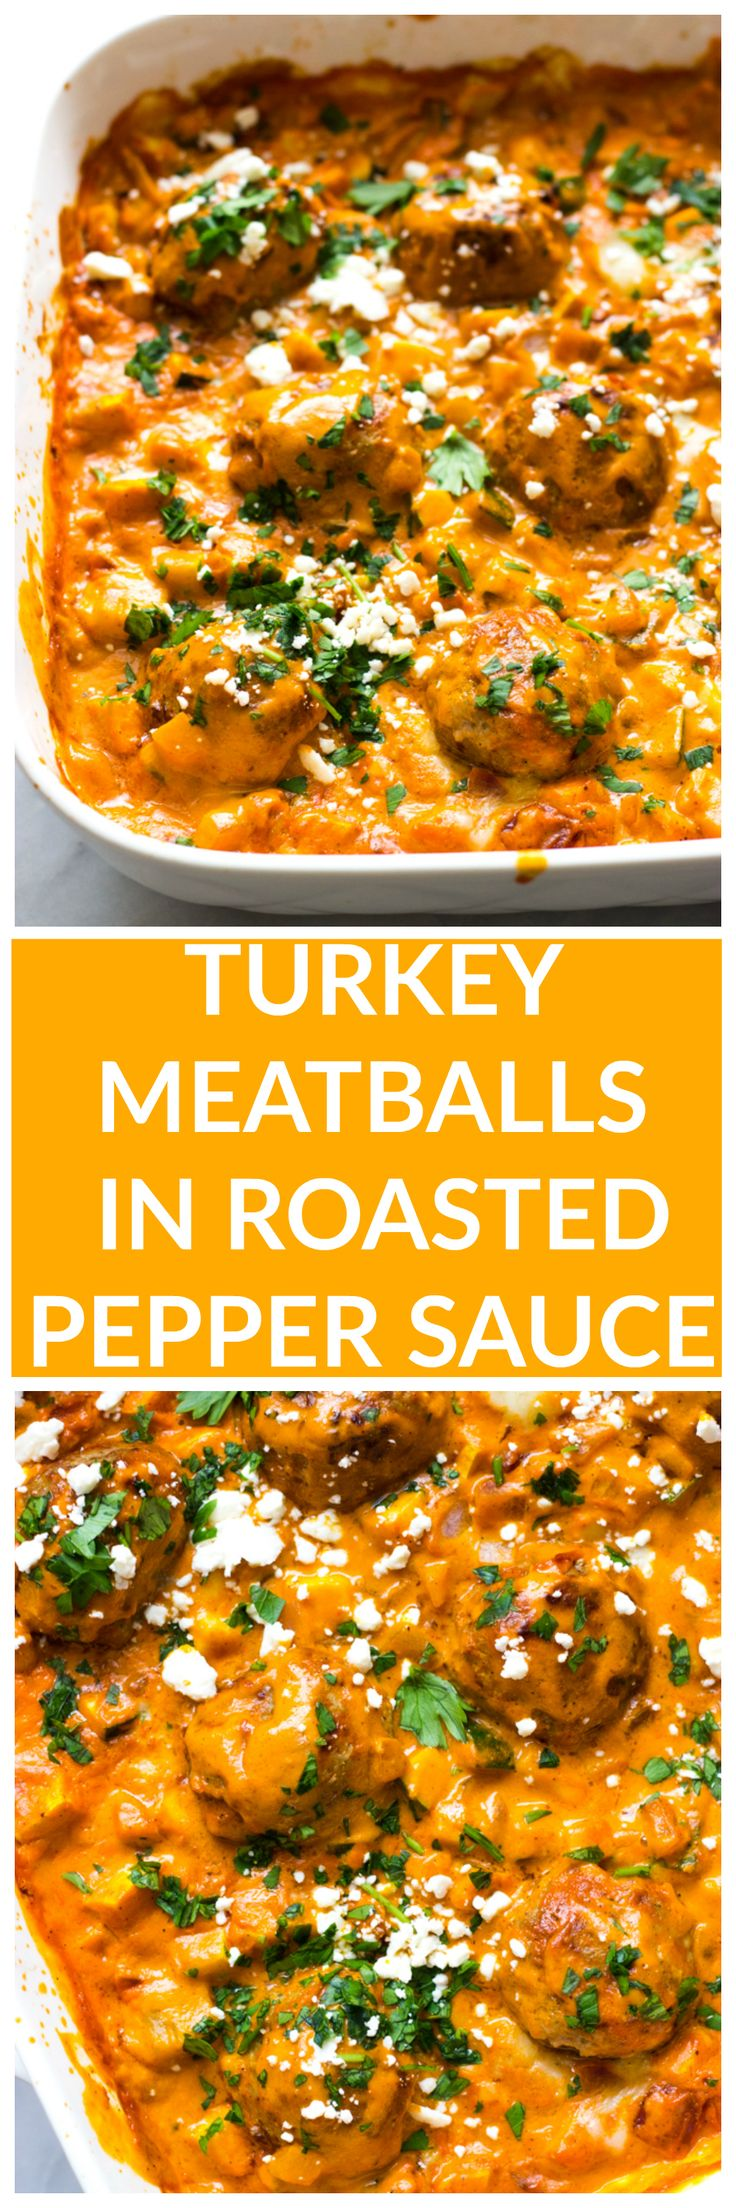 Turkey Meatballs in Roasted Pepper Sauce - made with no cream or cheese, this roasted pepper sauce is made with cashews then baked with healthy turkey meatballs and simple veggie hash | littlebroken.com @littlebroken @shadybrookfarms #tryturkey #sponsored